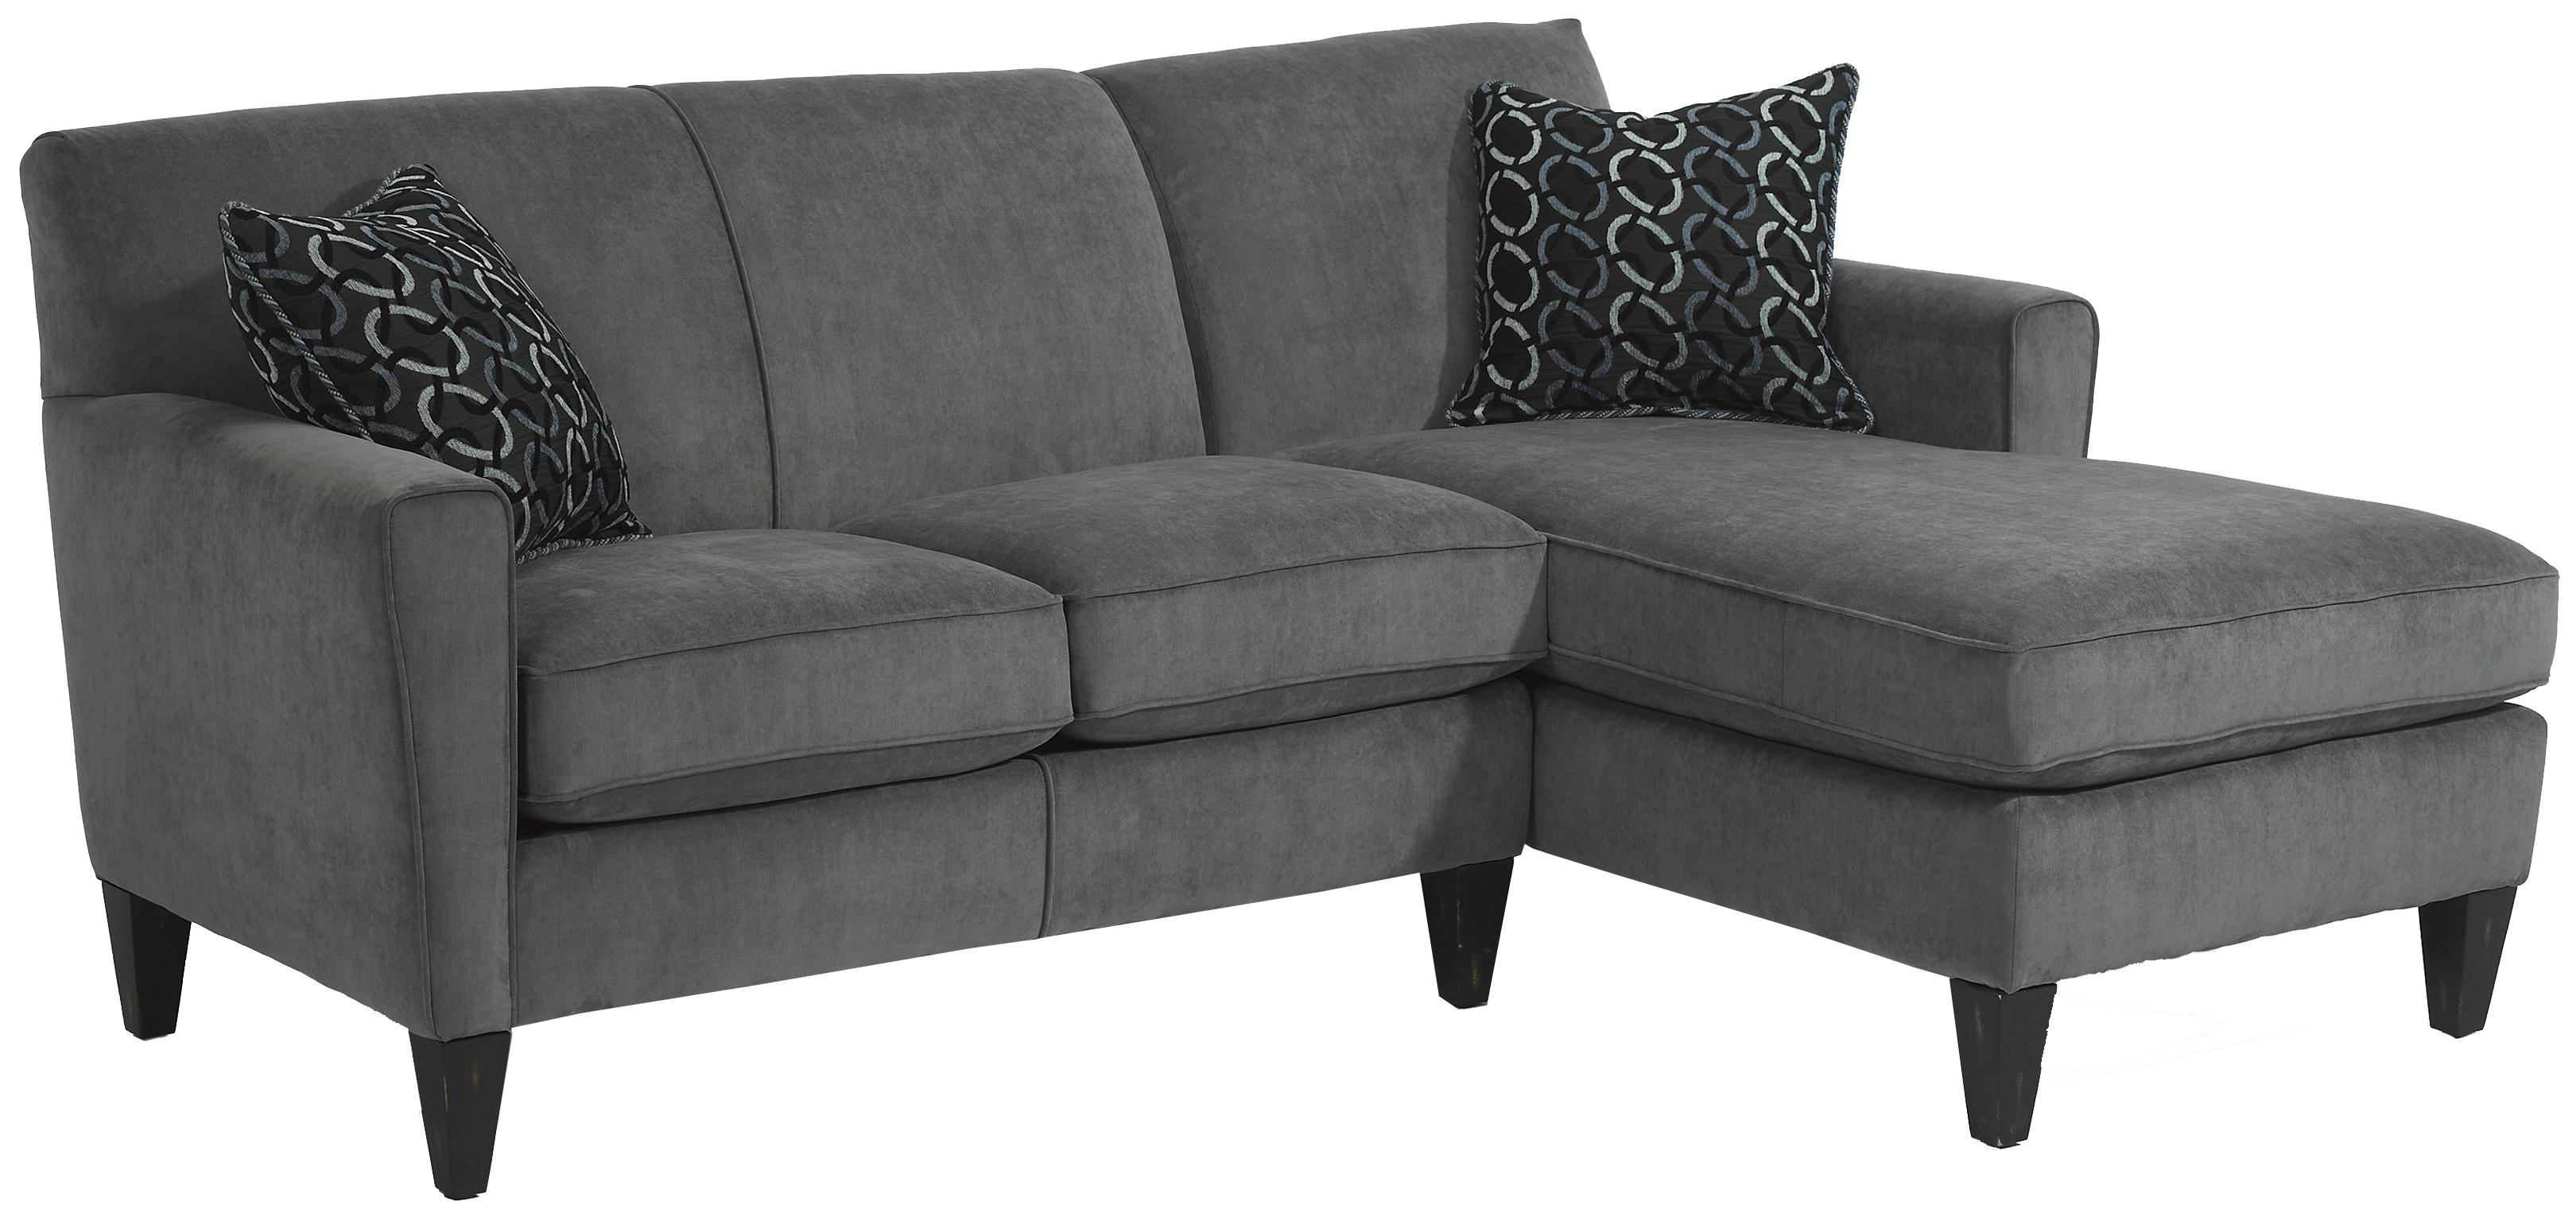 Flexsteel Digby Contemporary Sectional Sofa With Raf Chaise – Ahfa For Delano 2 Piece Sectionals With Laf Oversized Chaise (View 21 of 30)